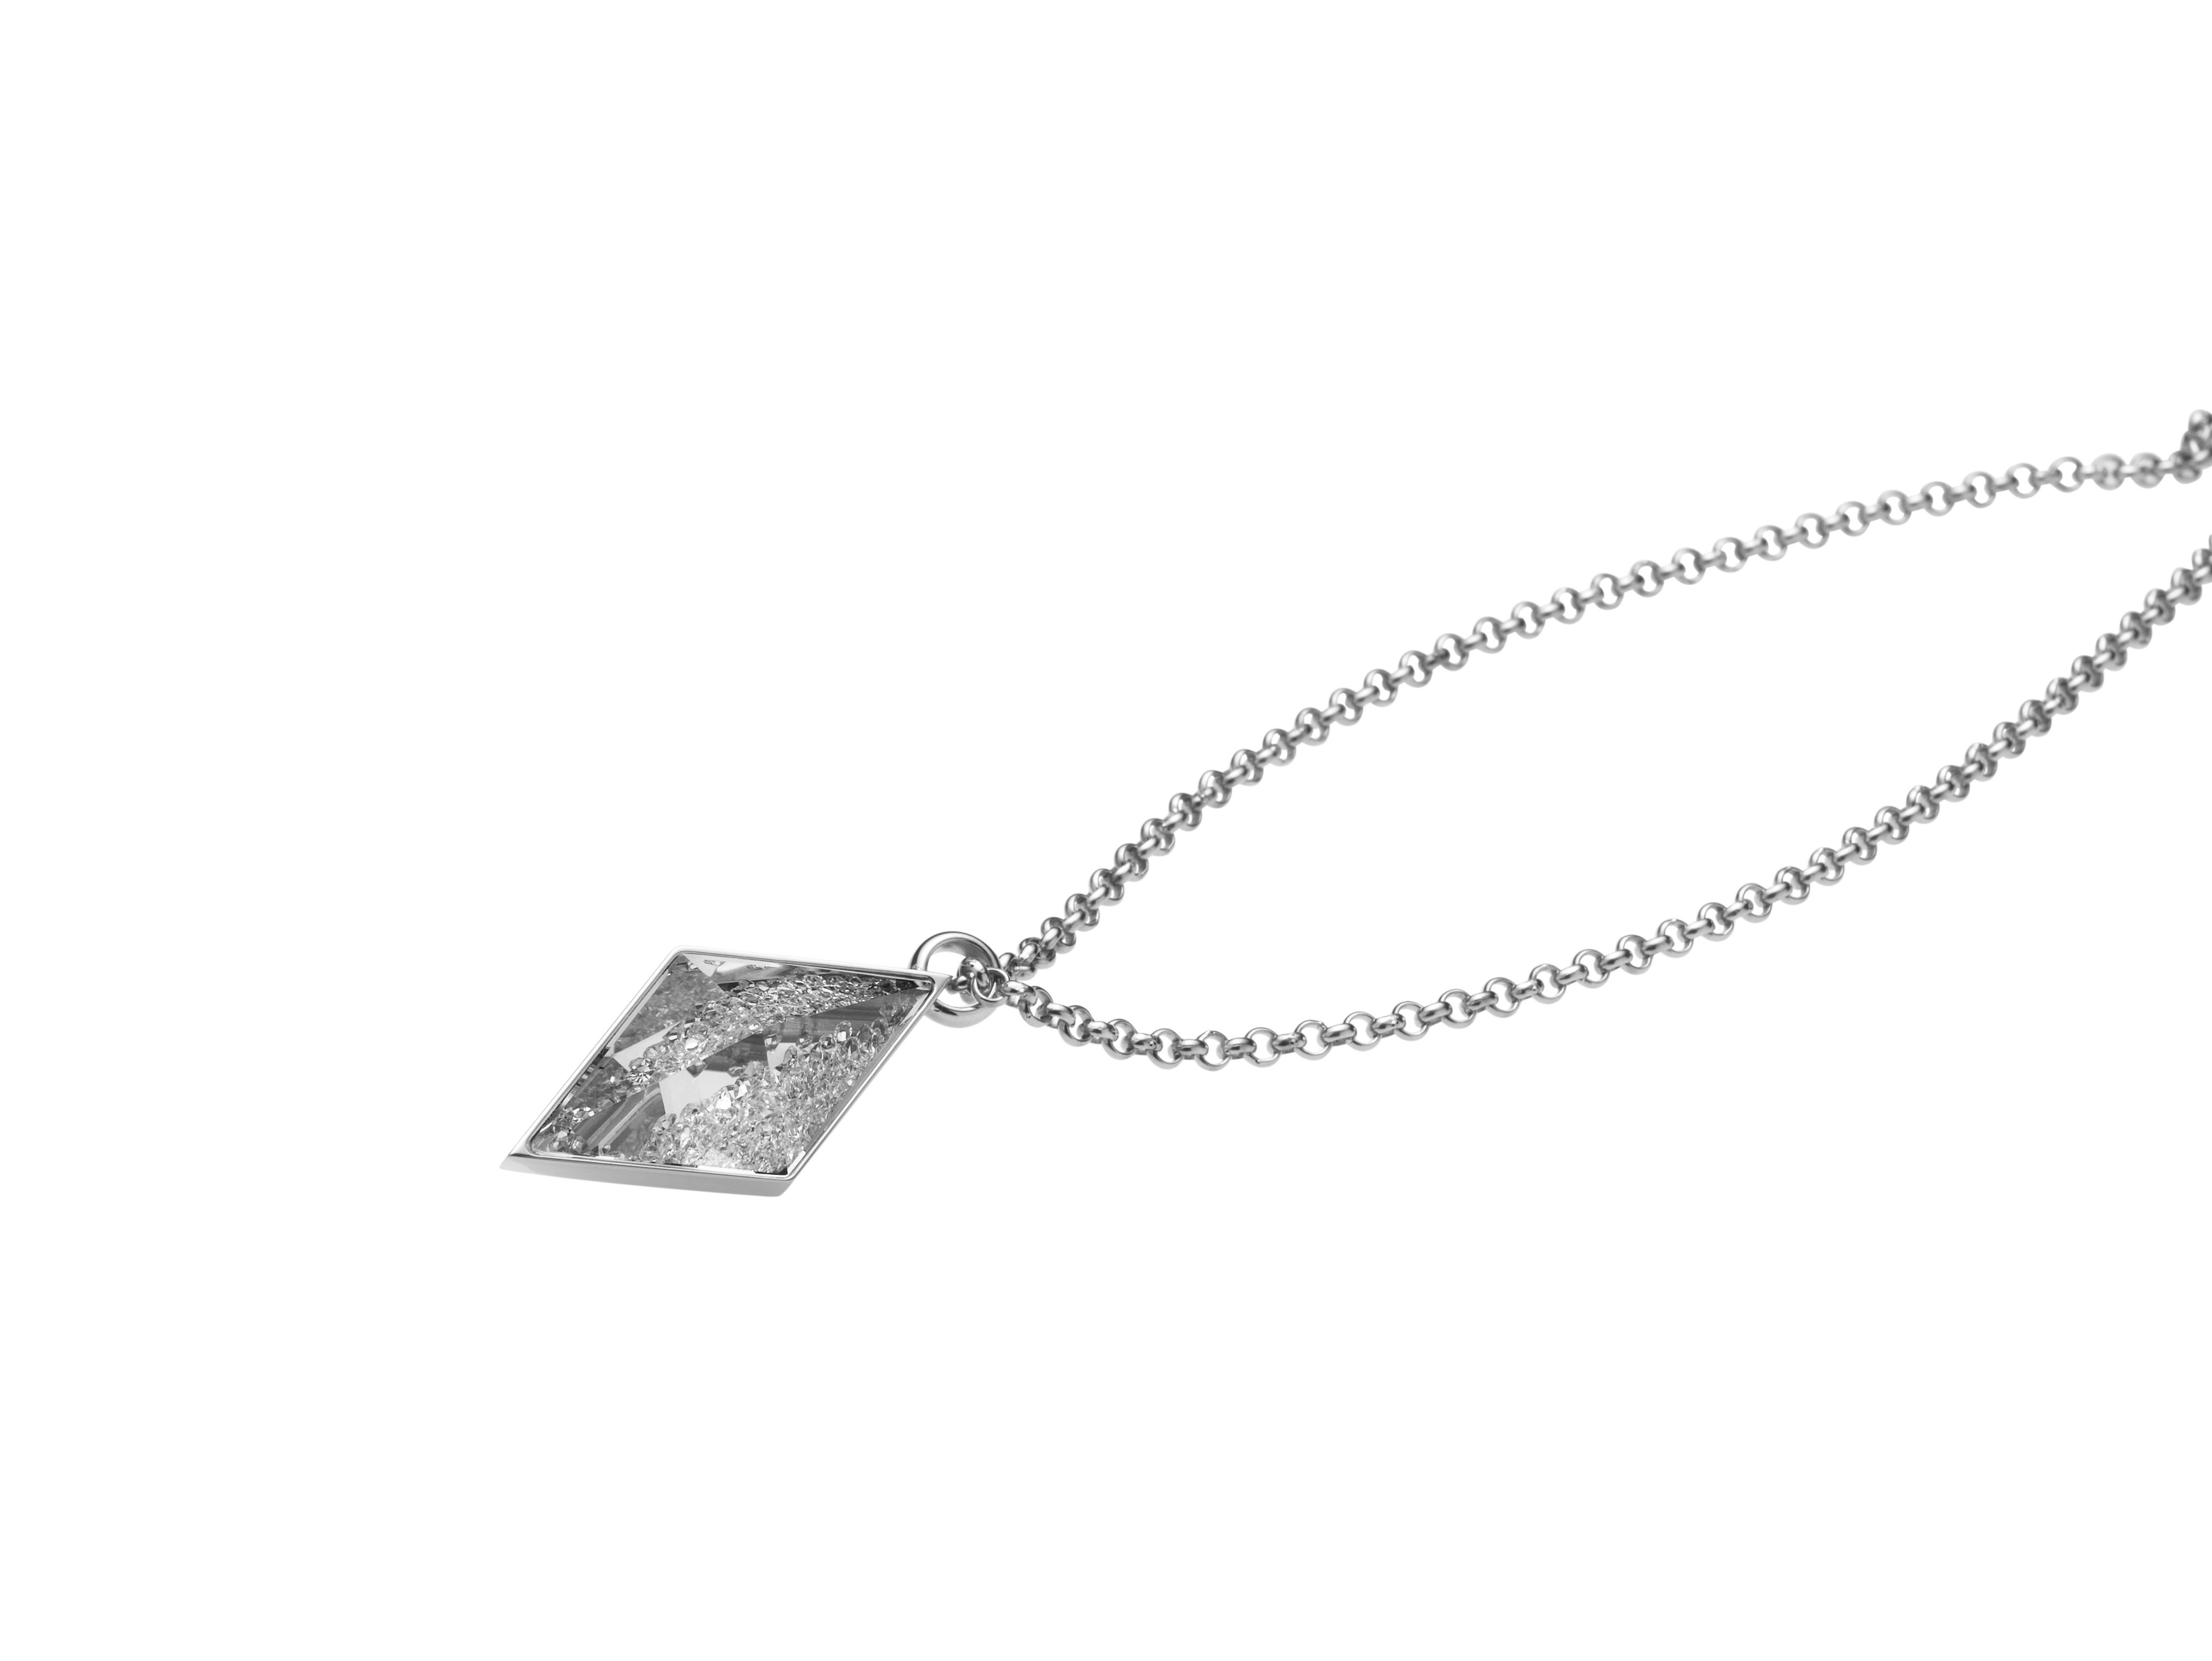 Razzle necklace silver